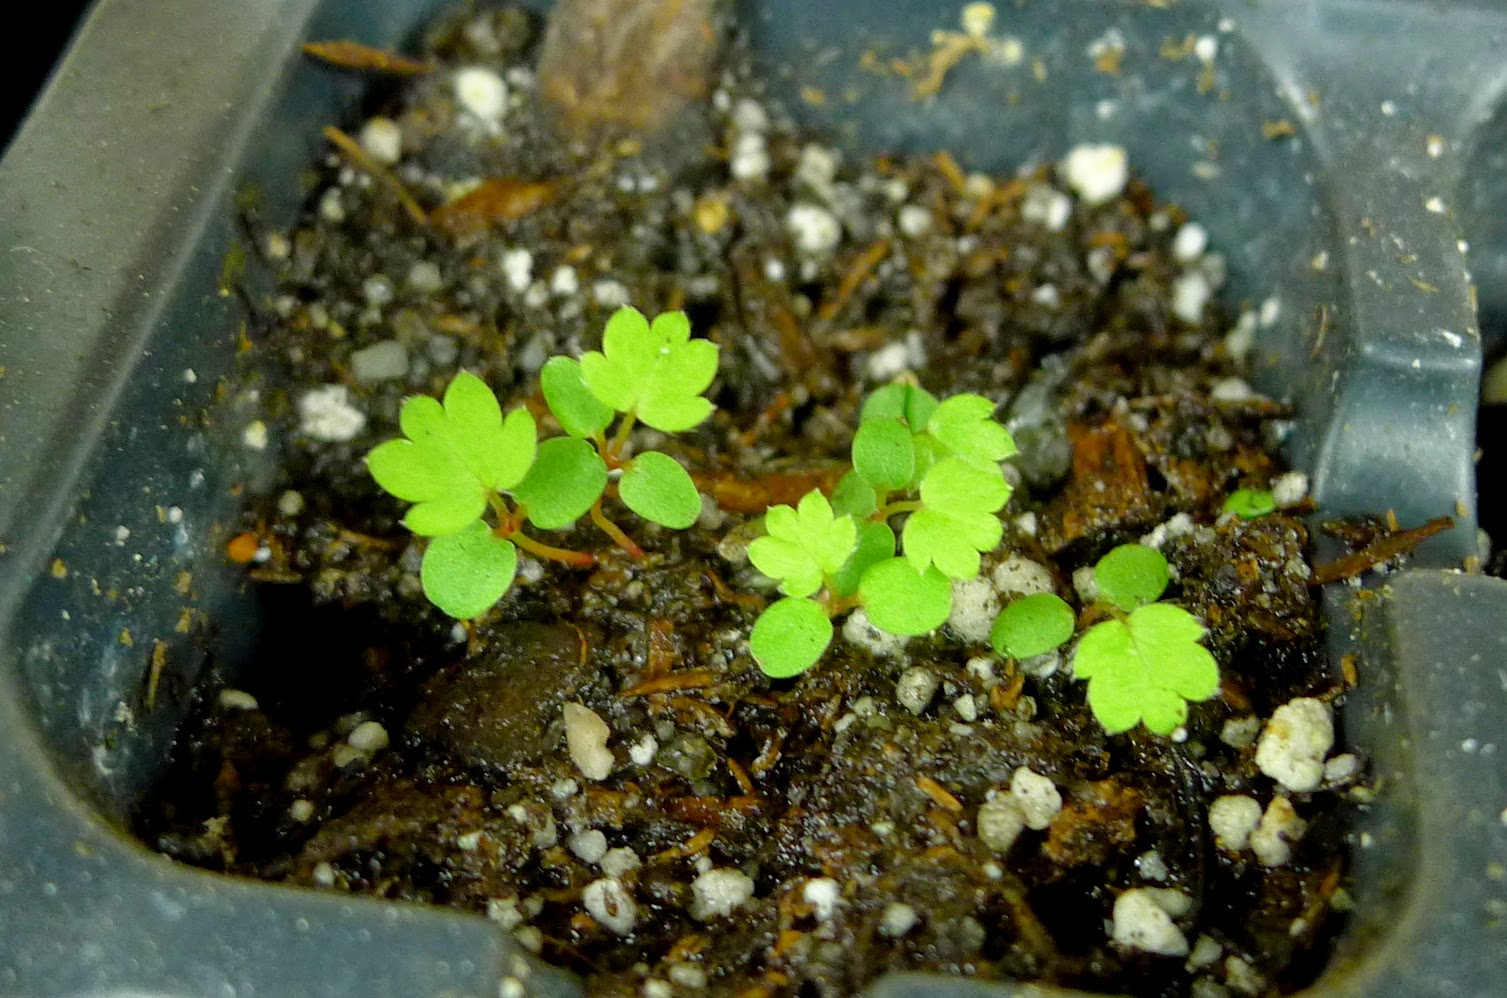 Alpine strawberry seedlings